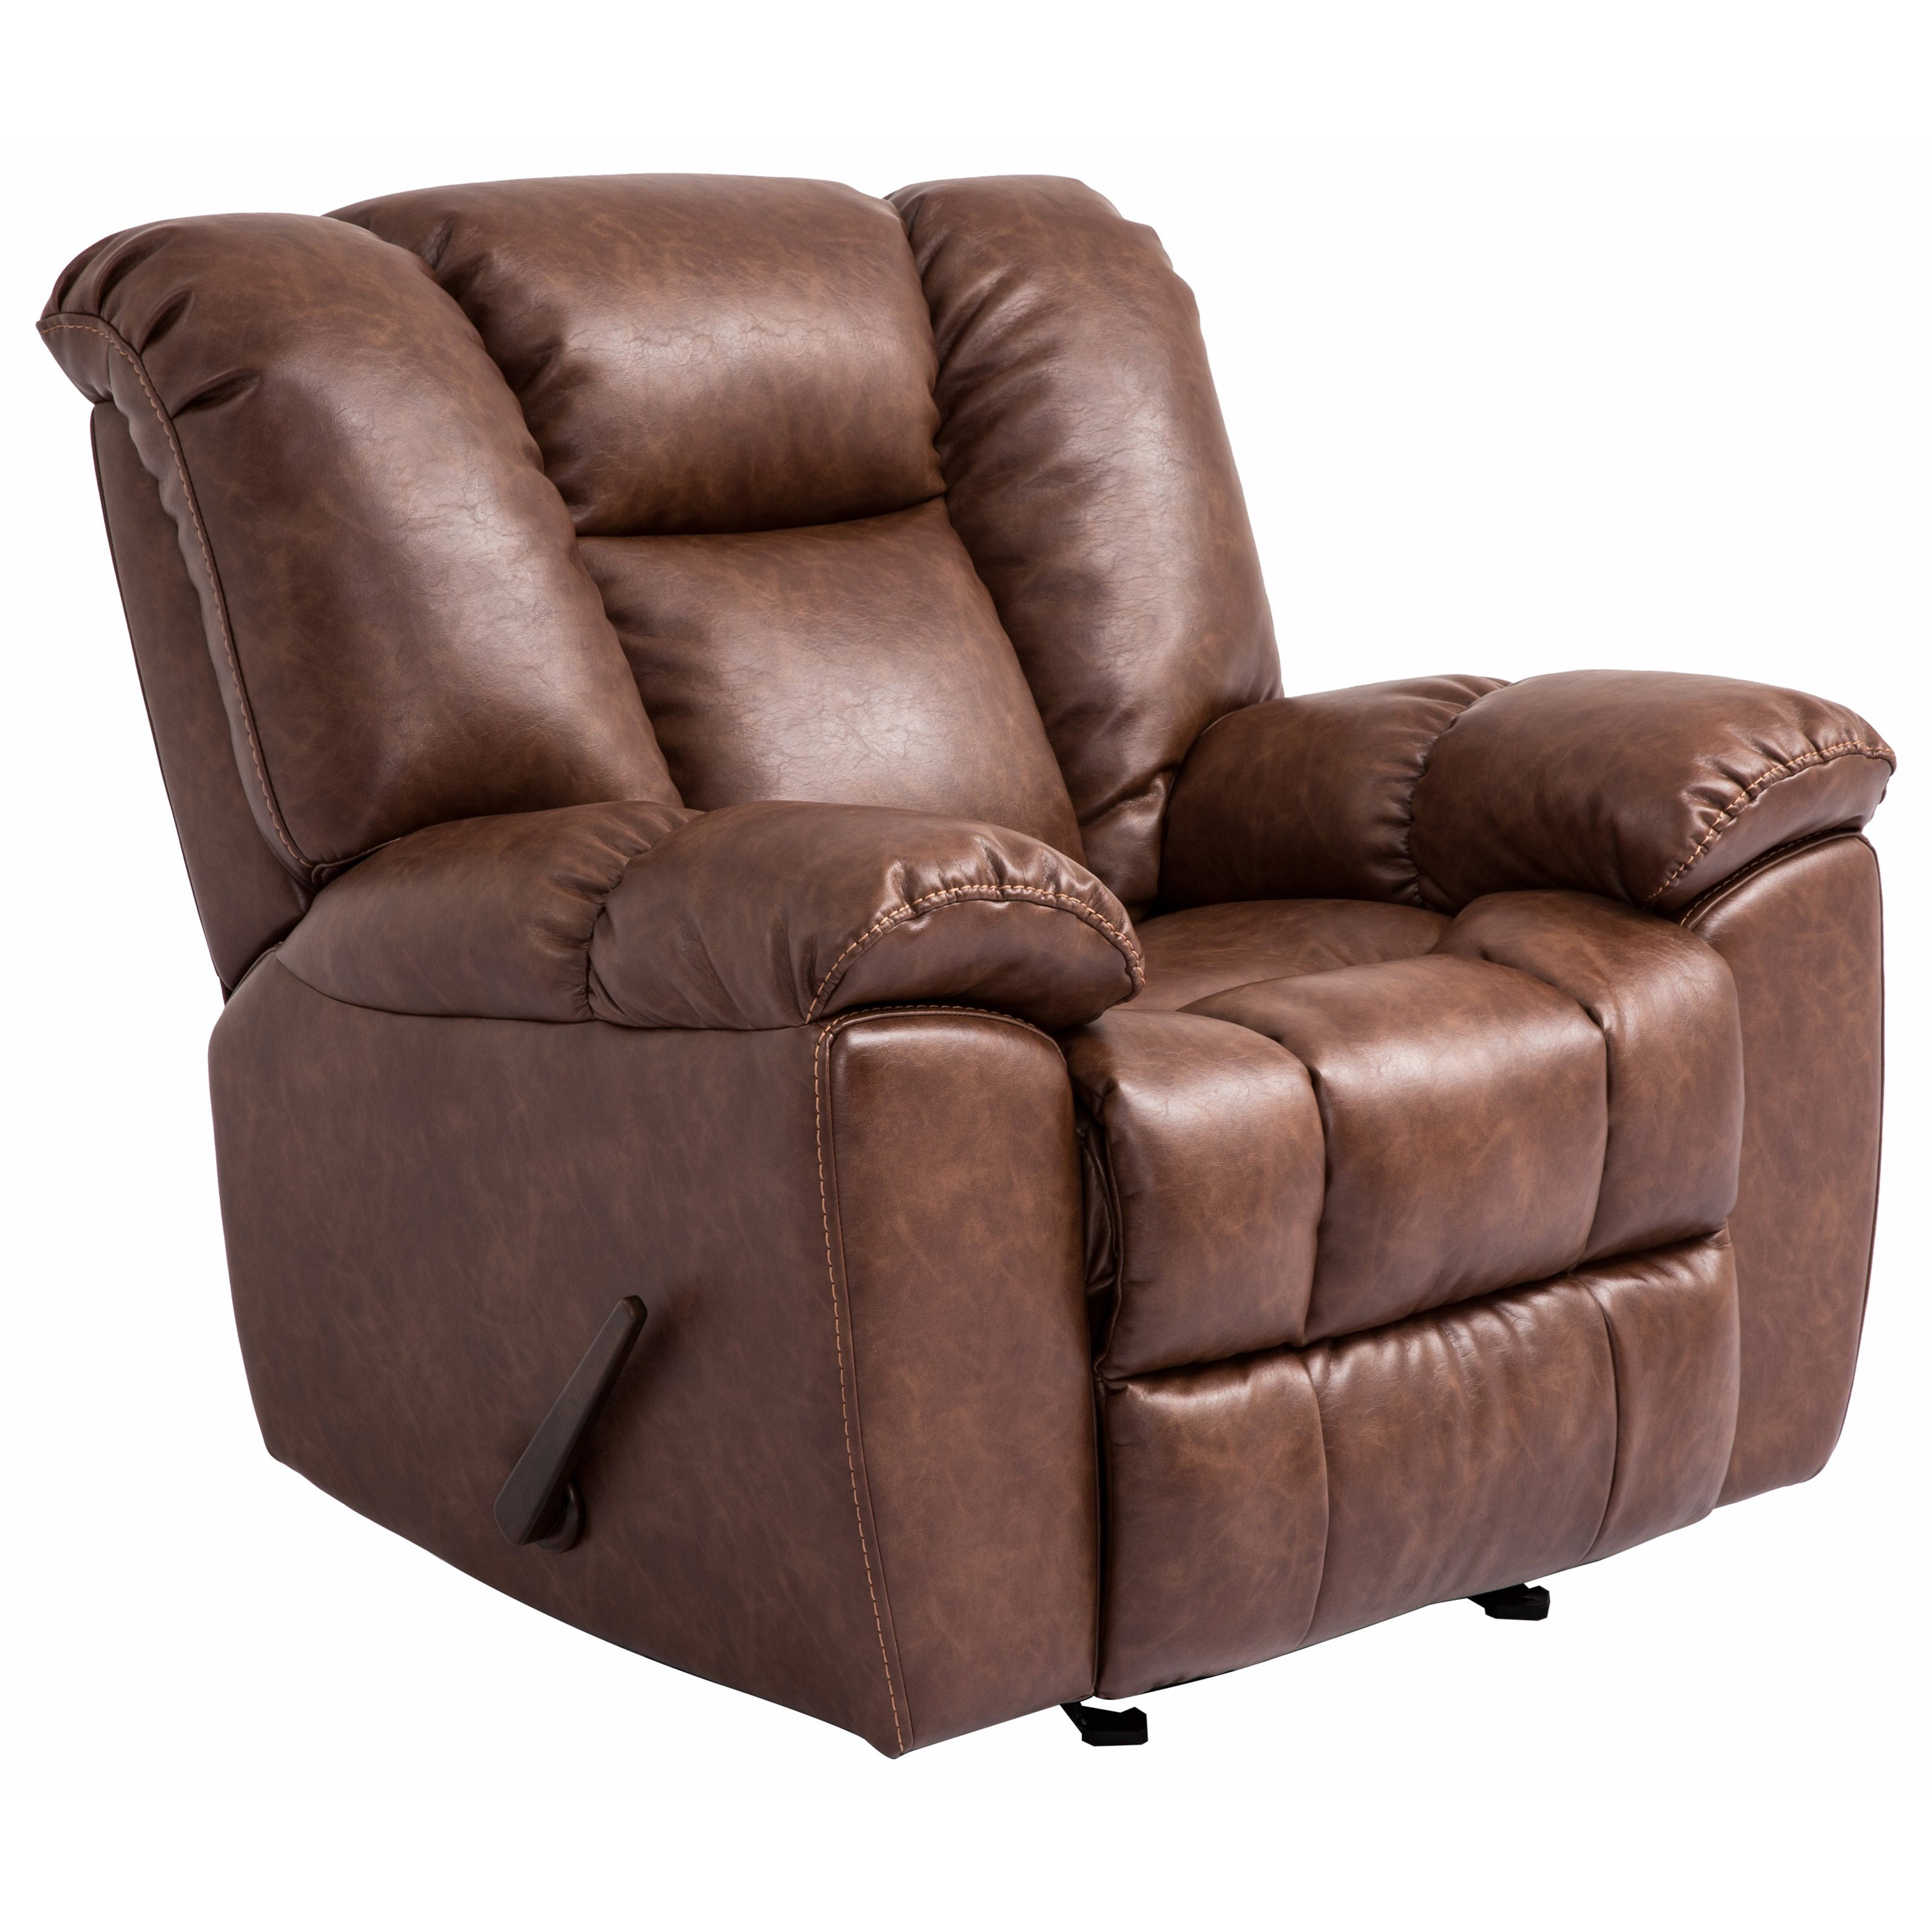 1017M Glider Recliner by Cheers Sofa at Lagniappe Home Store